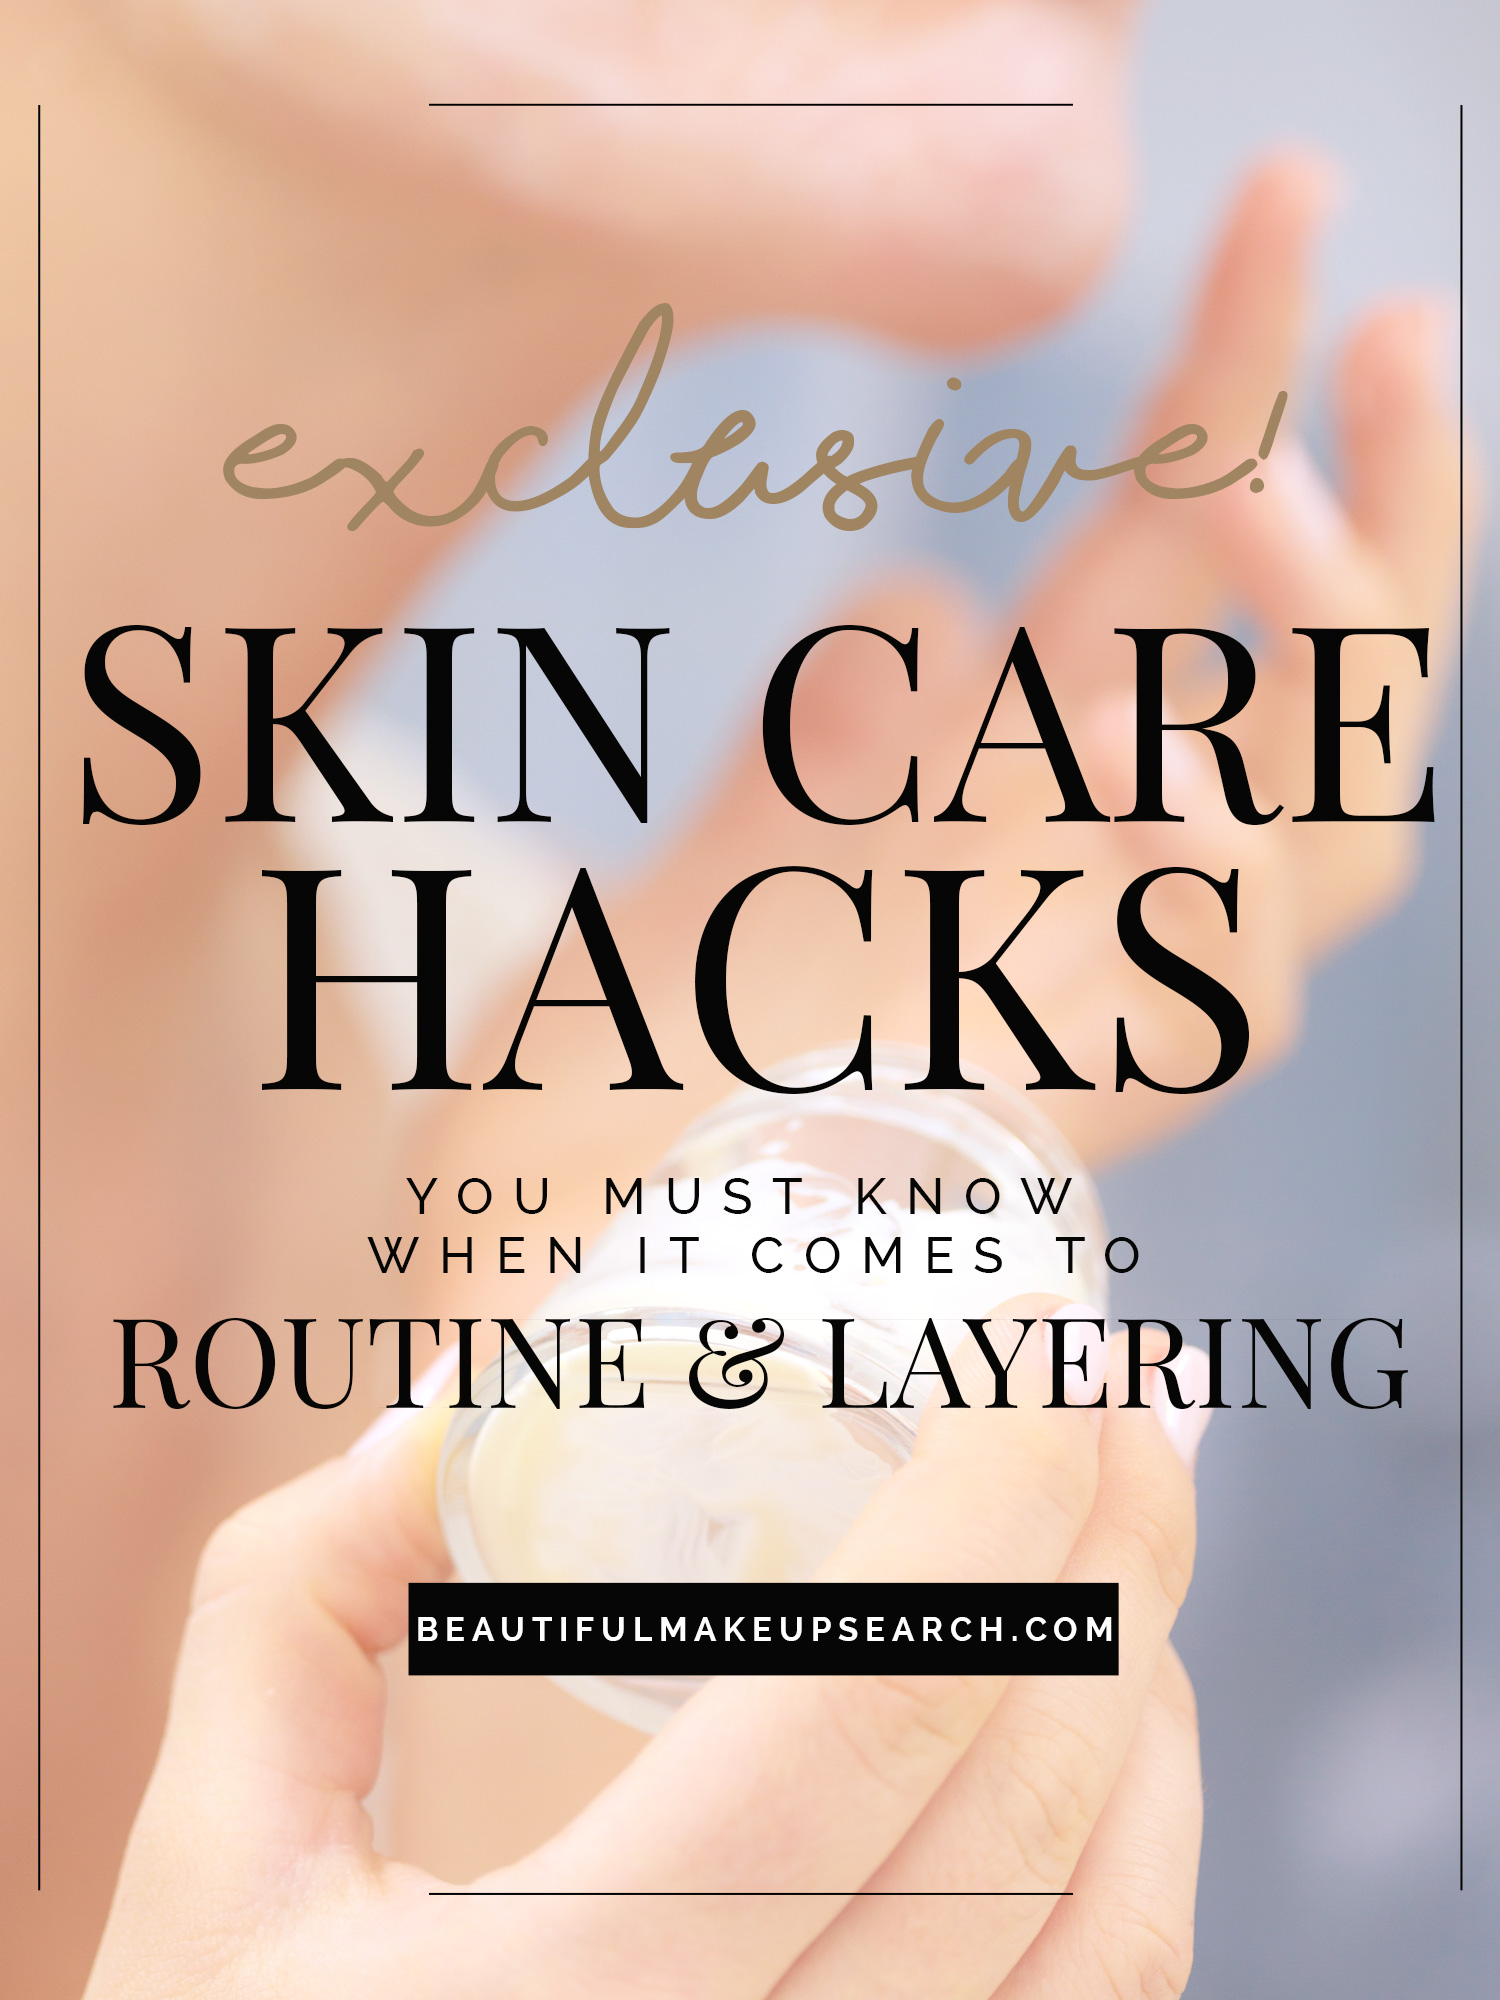 Skin Care Hacks You Need to Know When It Comes to Your Routine & Layering